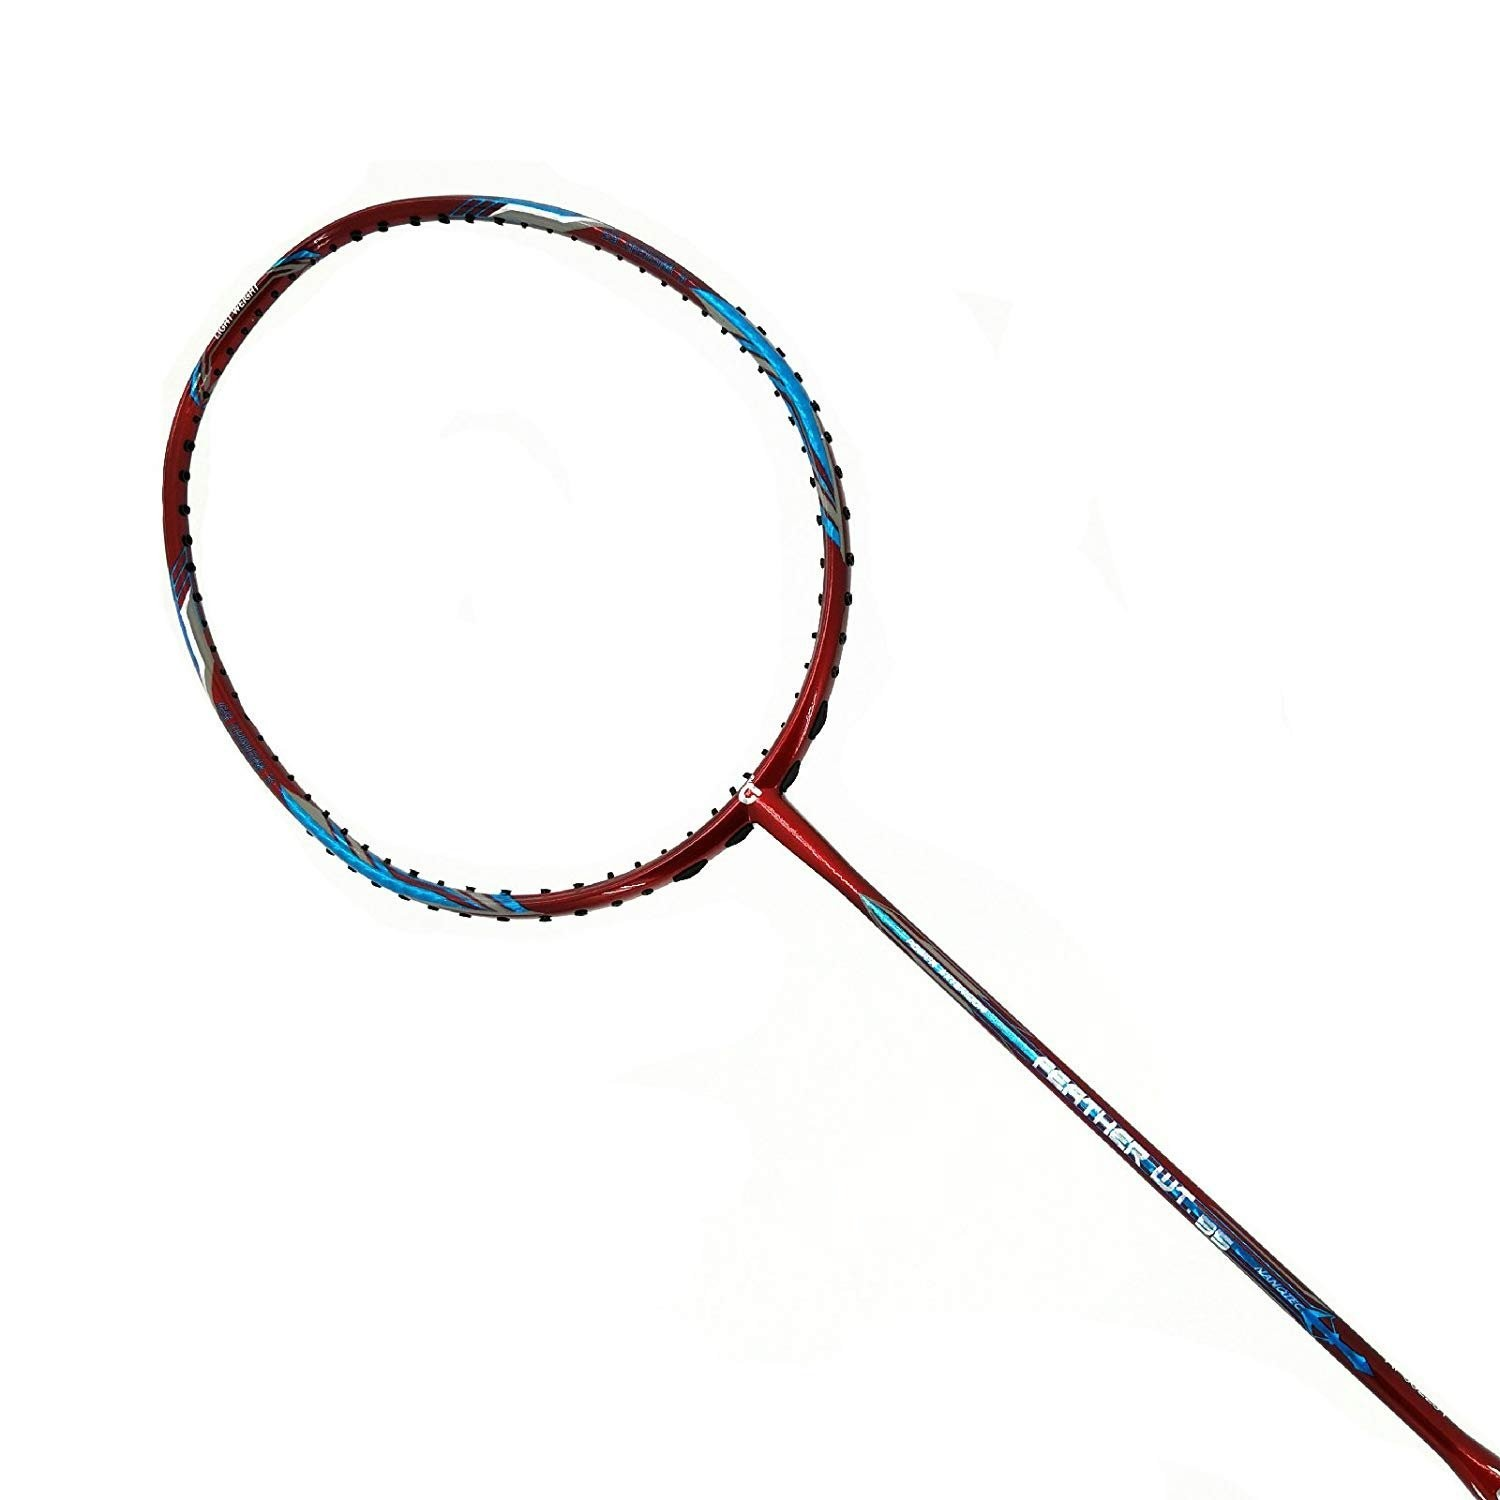 Apacs Feather Weight 55 Red Badminton Racquet